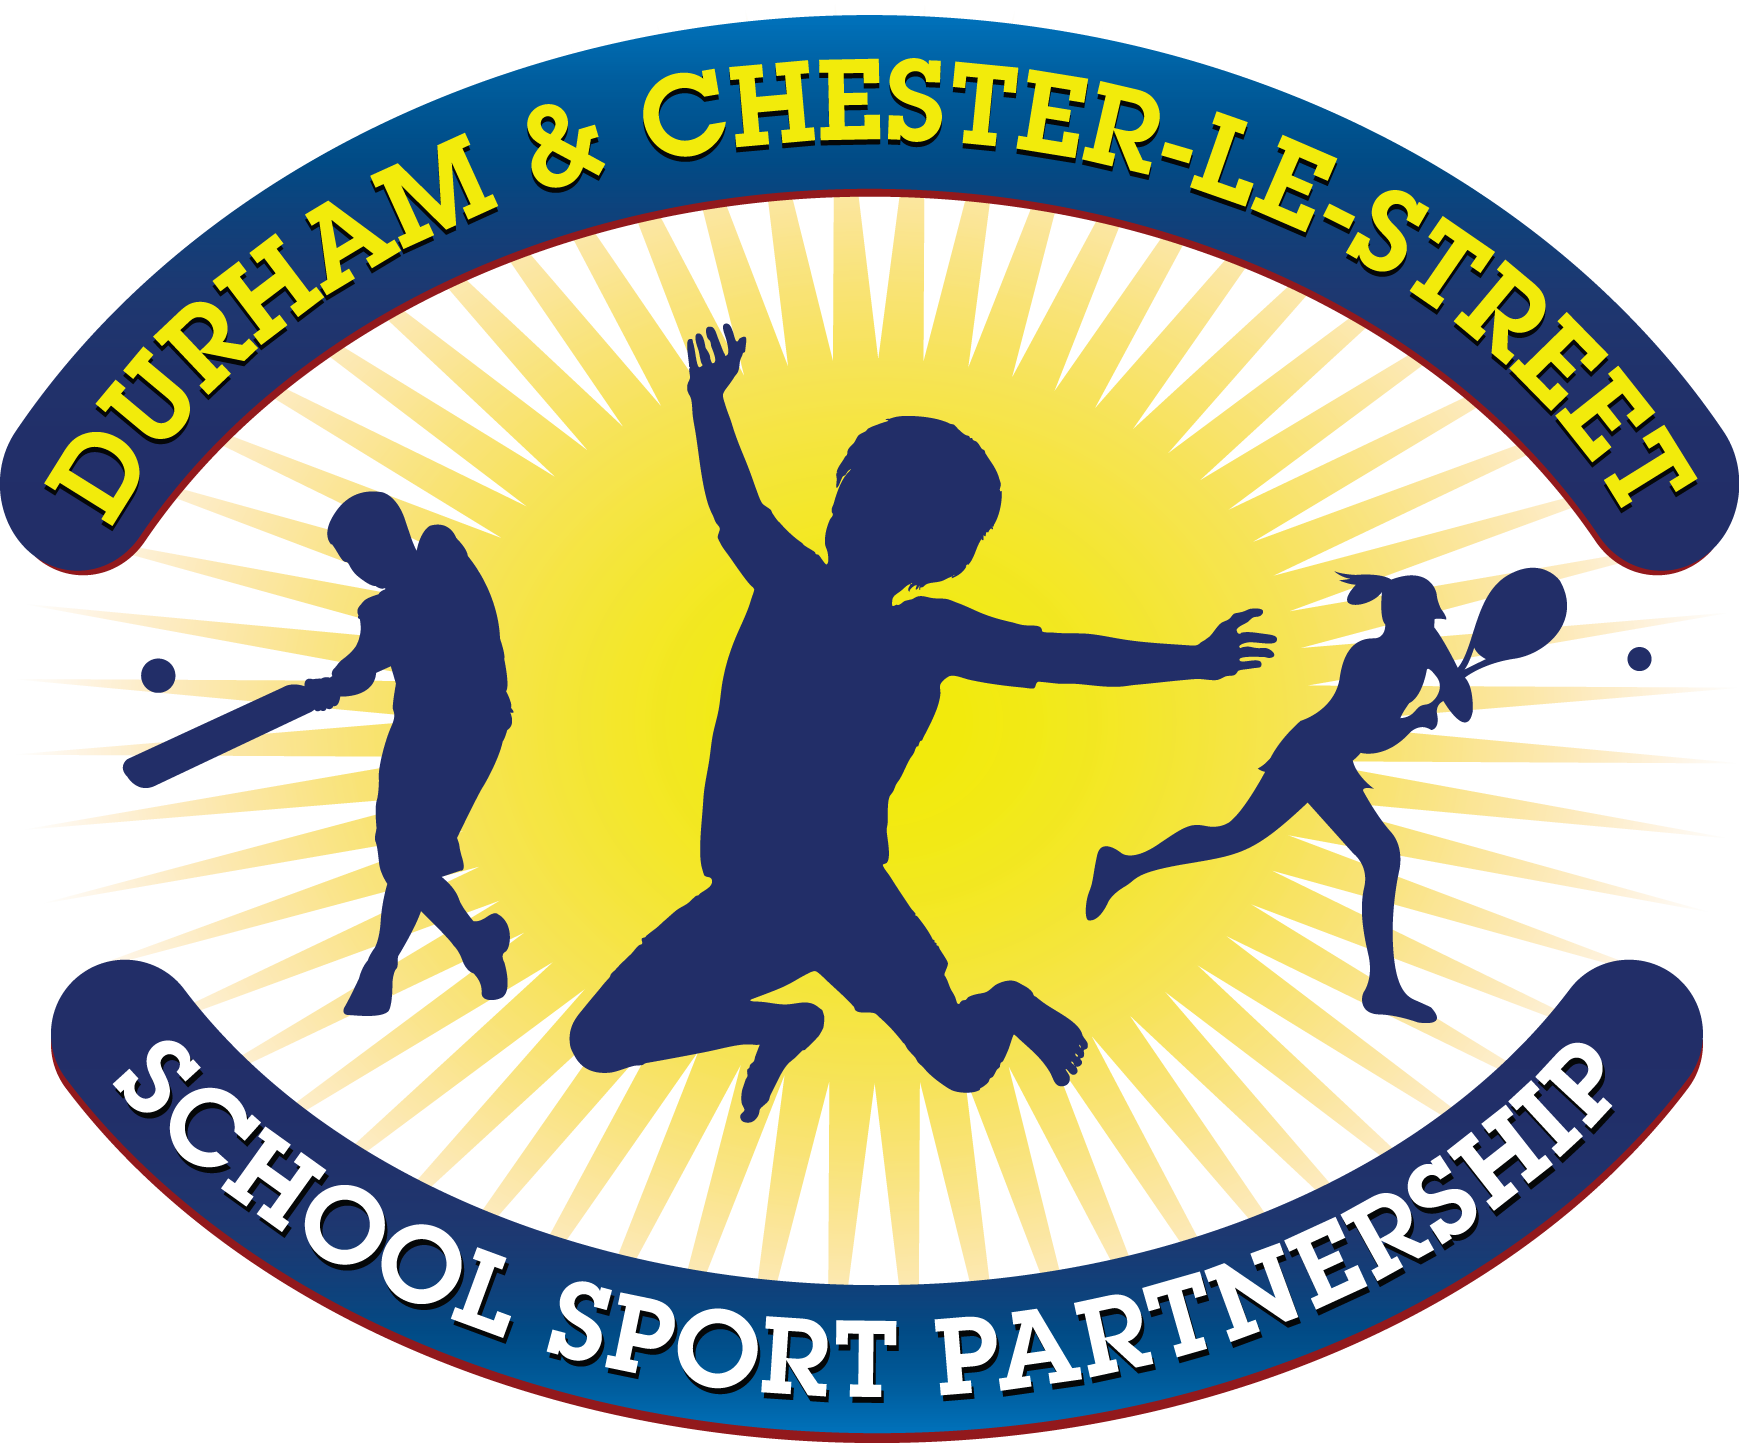 Durham & Chester-le-Street School Sports Partnership